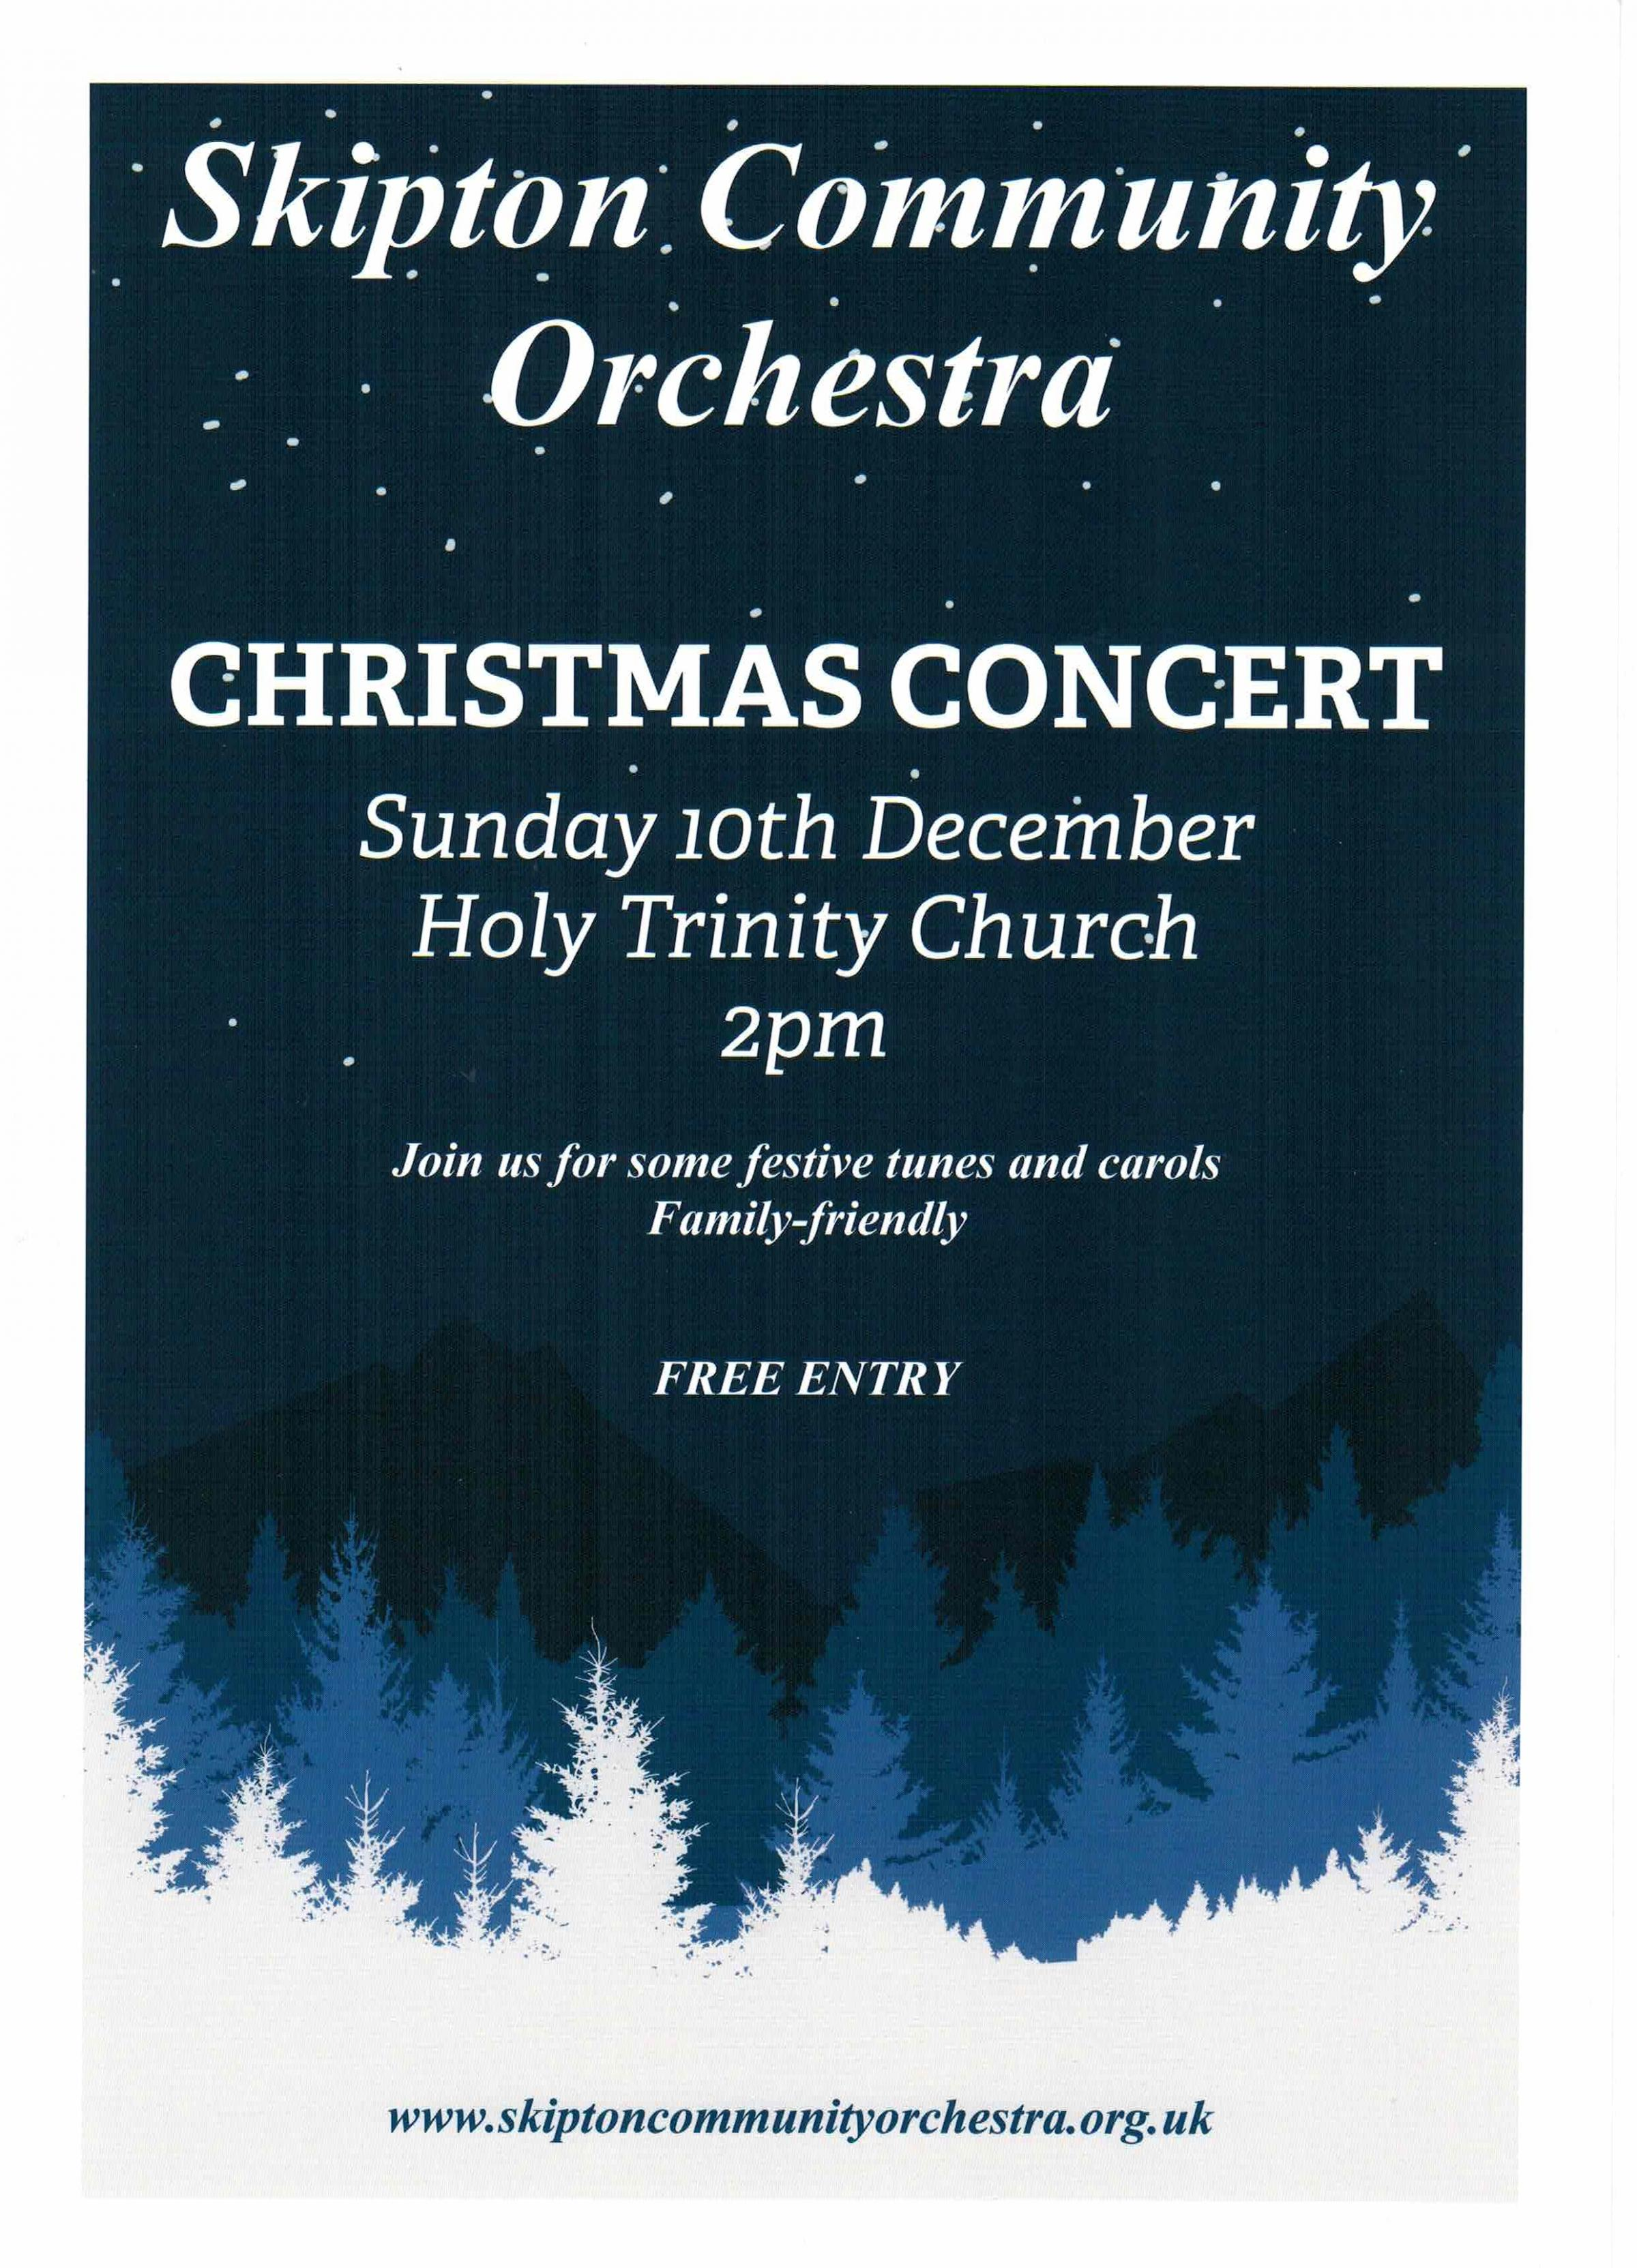 Skipton Community Orchestra Christmas Concert